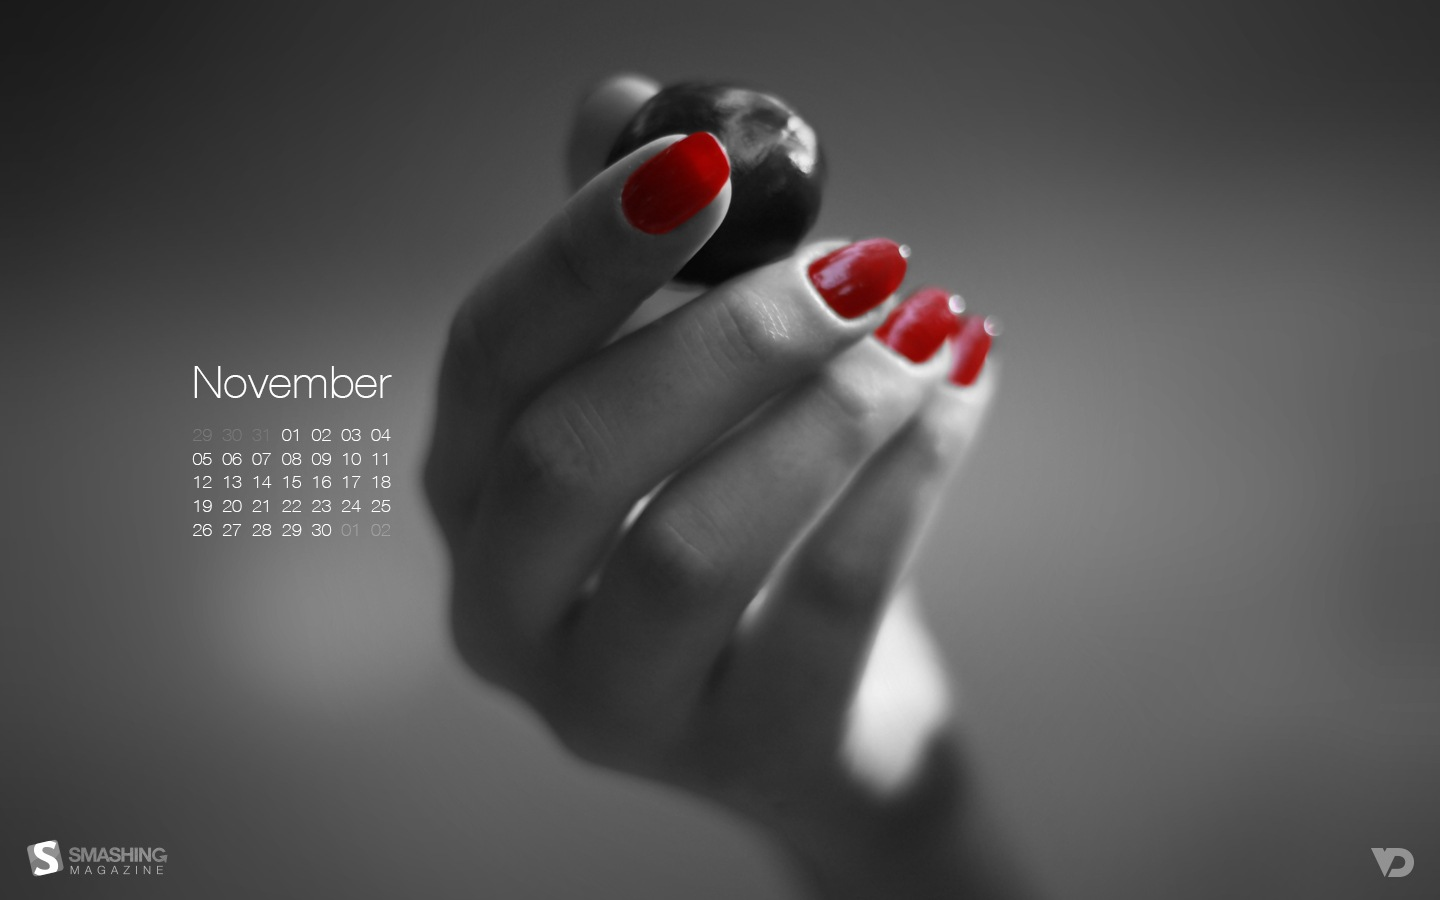 In January Calendar Wallpaper 32031